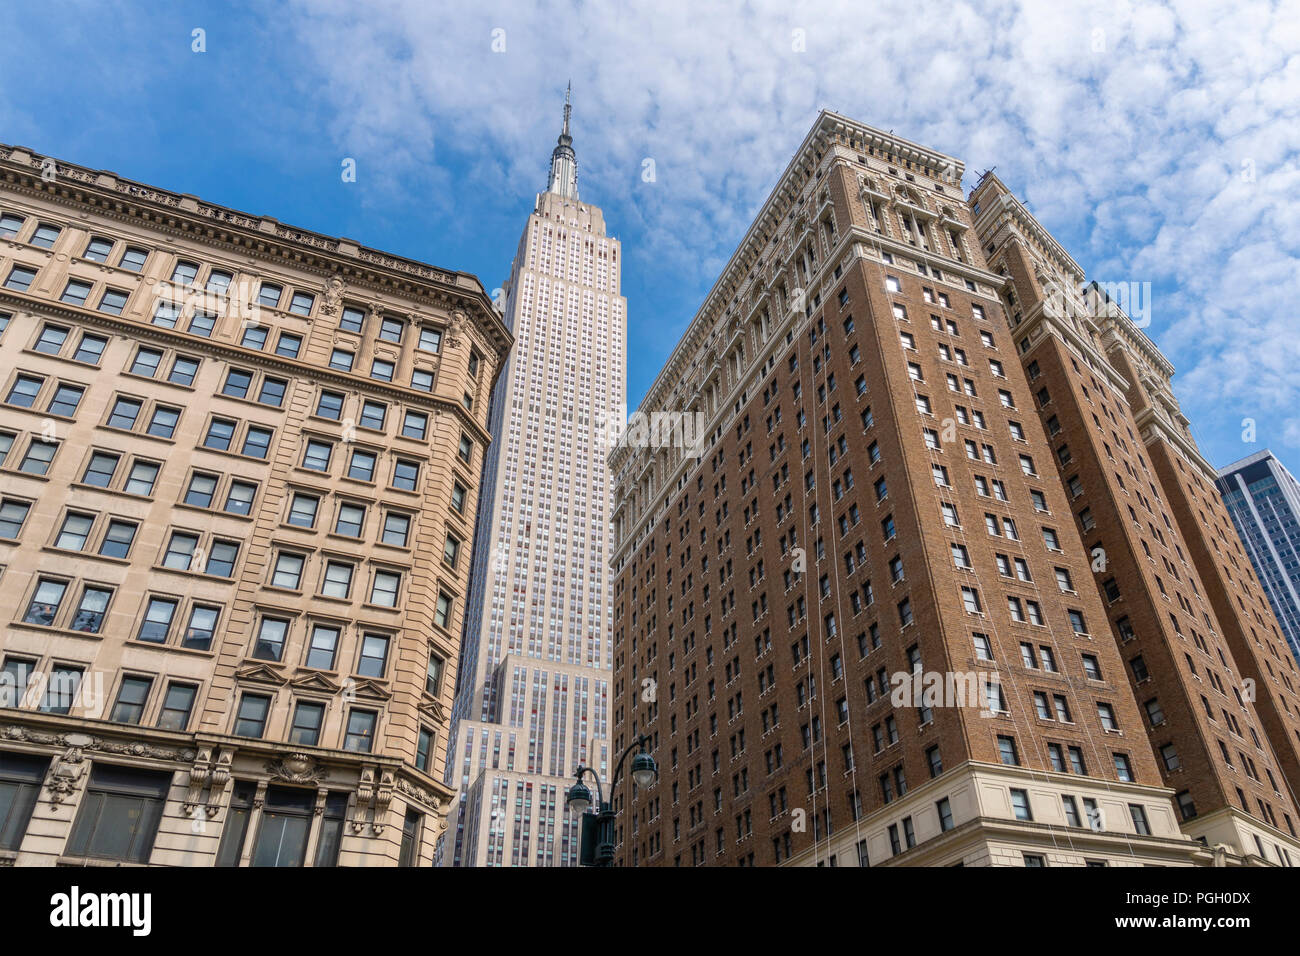 Empire State Building in New York City Stockbild